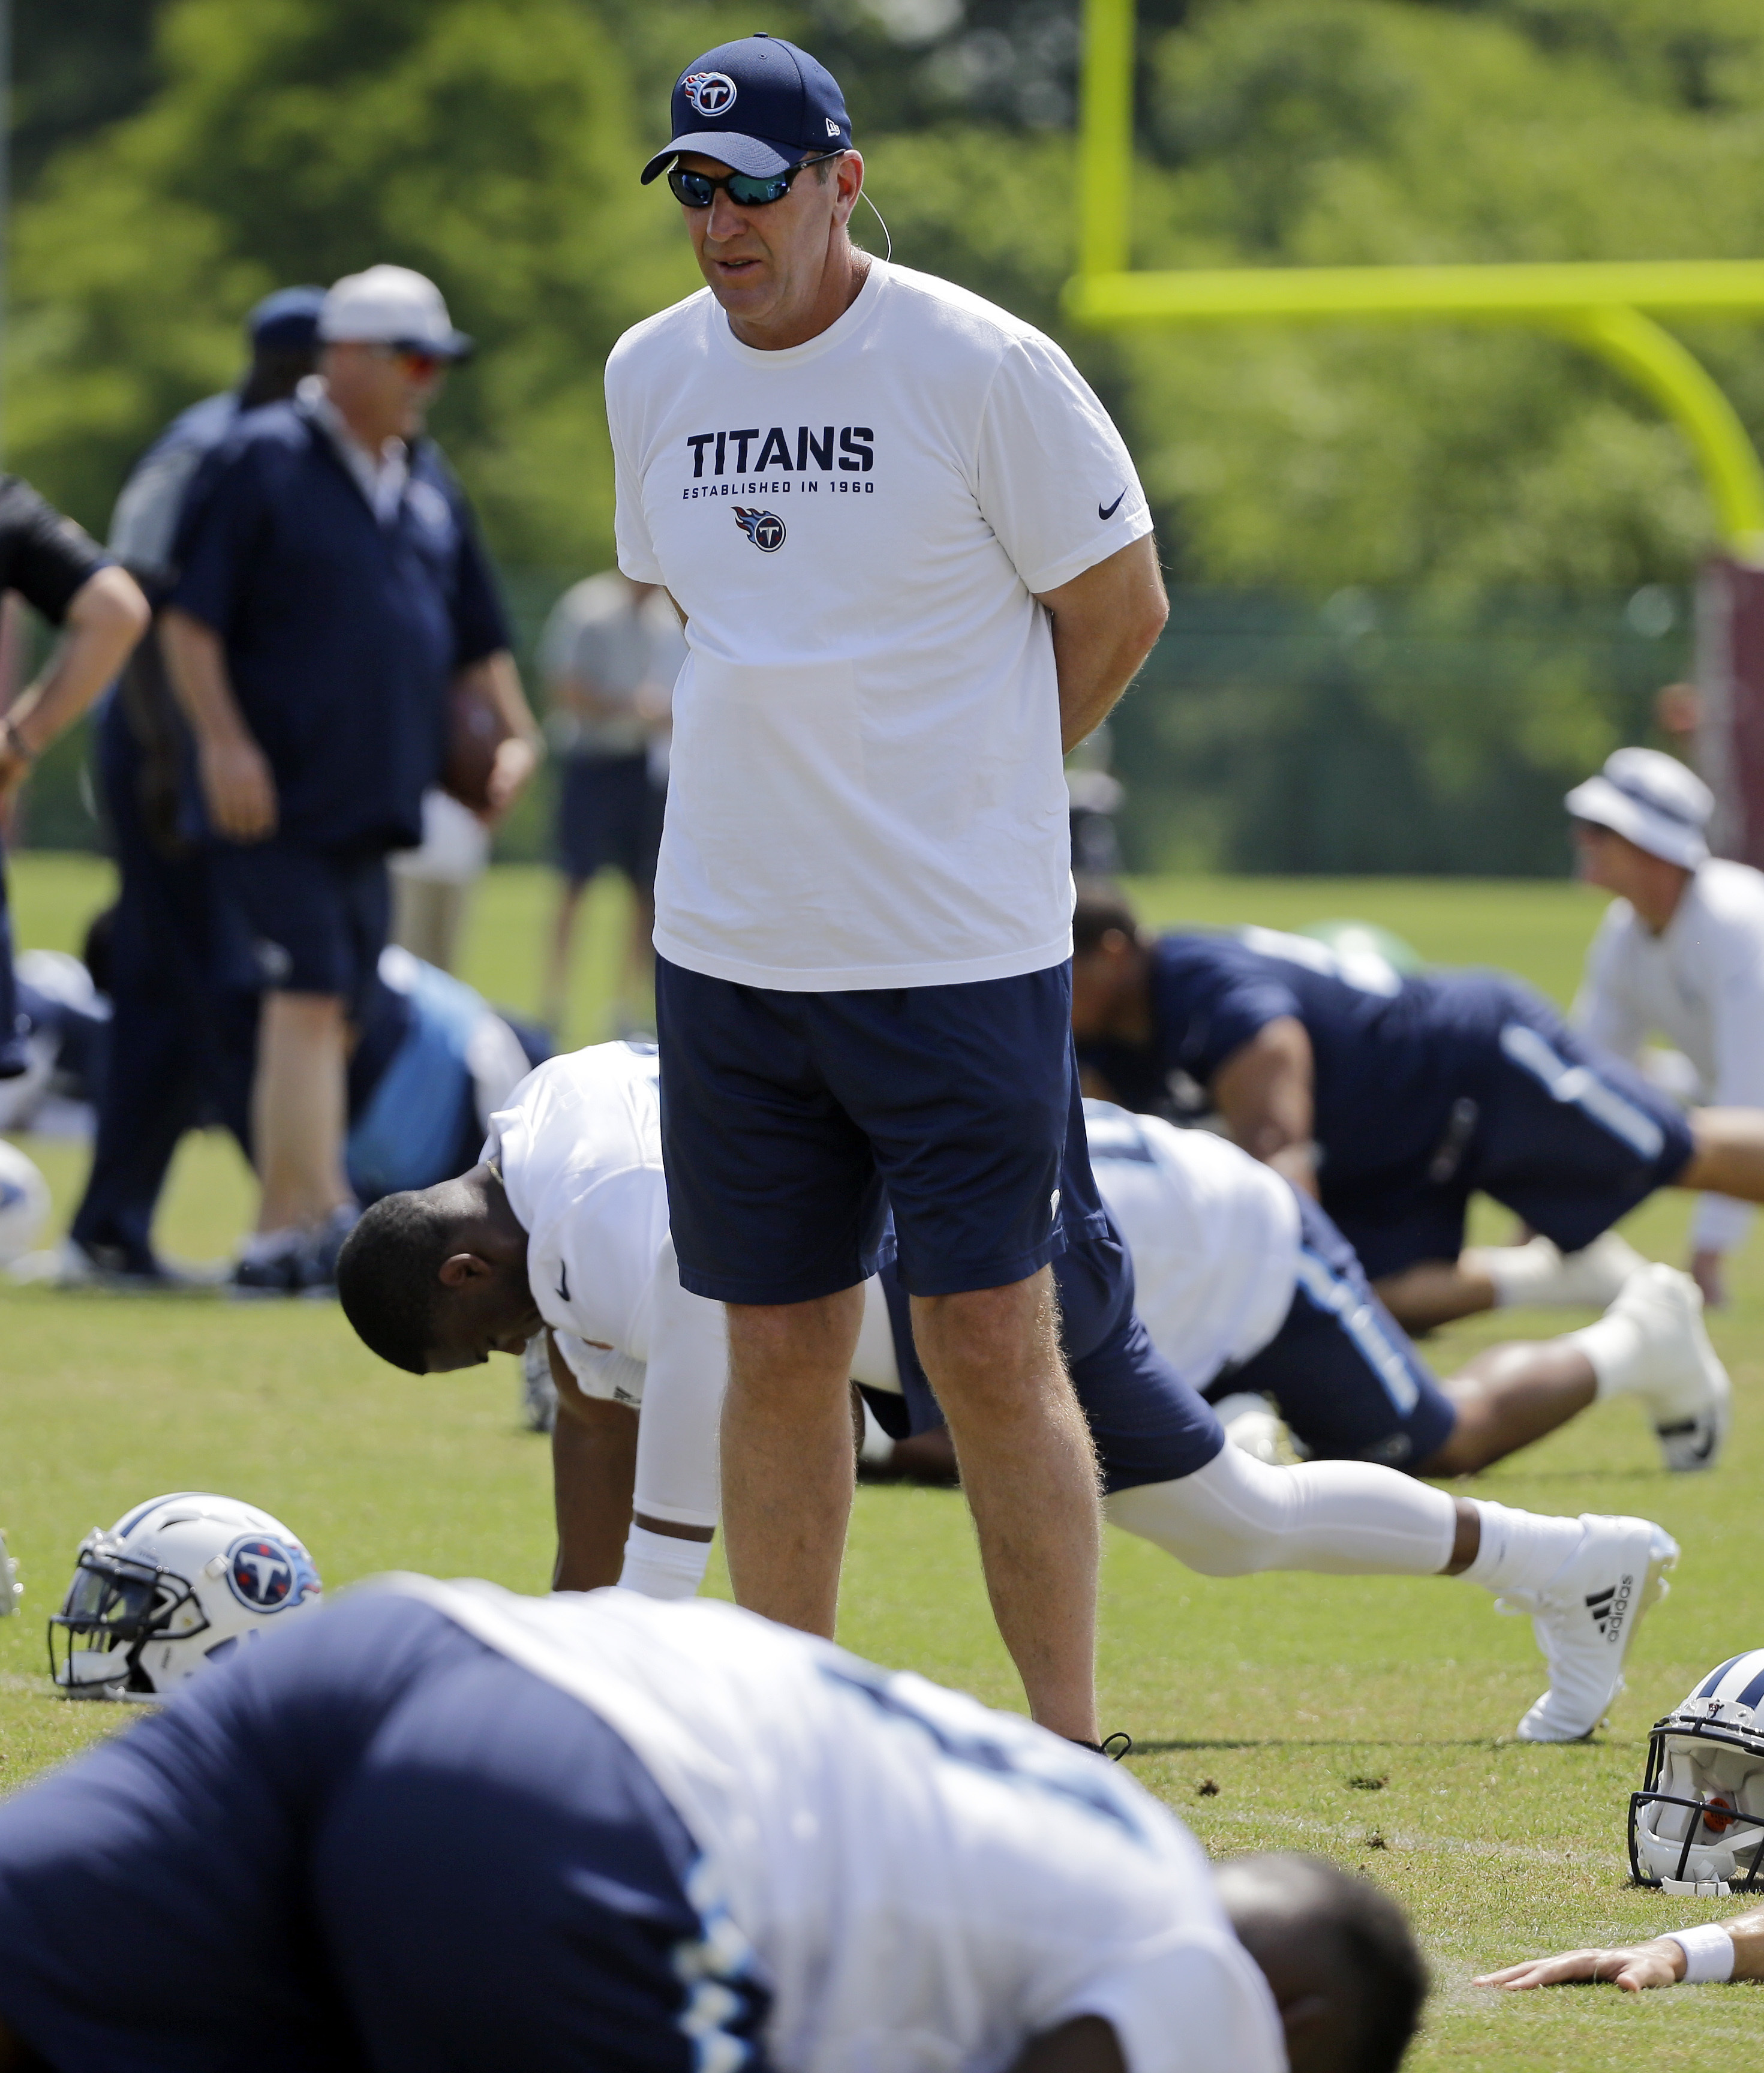 Tennessee Titans head coach Mike Mularkey watches as players stretch during an NFL football practice Tuesday, May 24, 2016, in Nashville, Tenn. (AP Photo/Mark Humphrey)